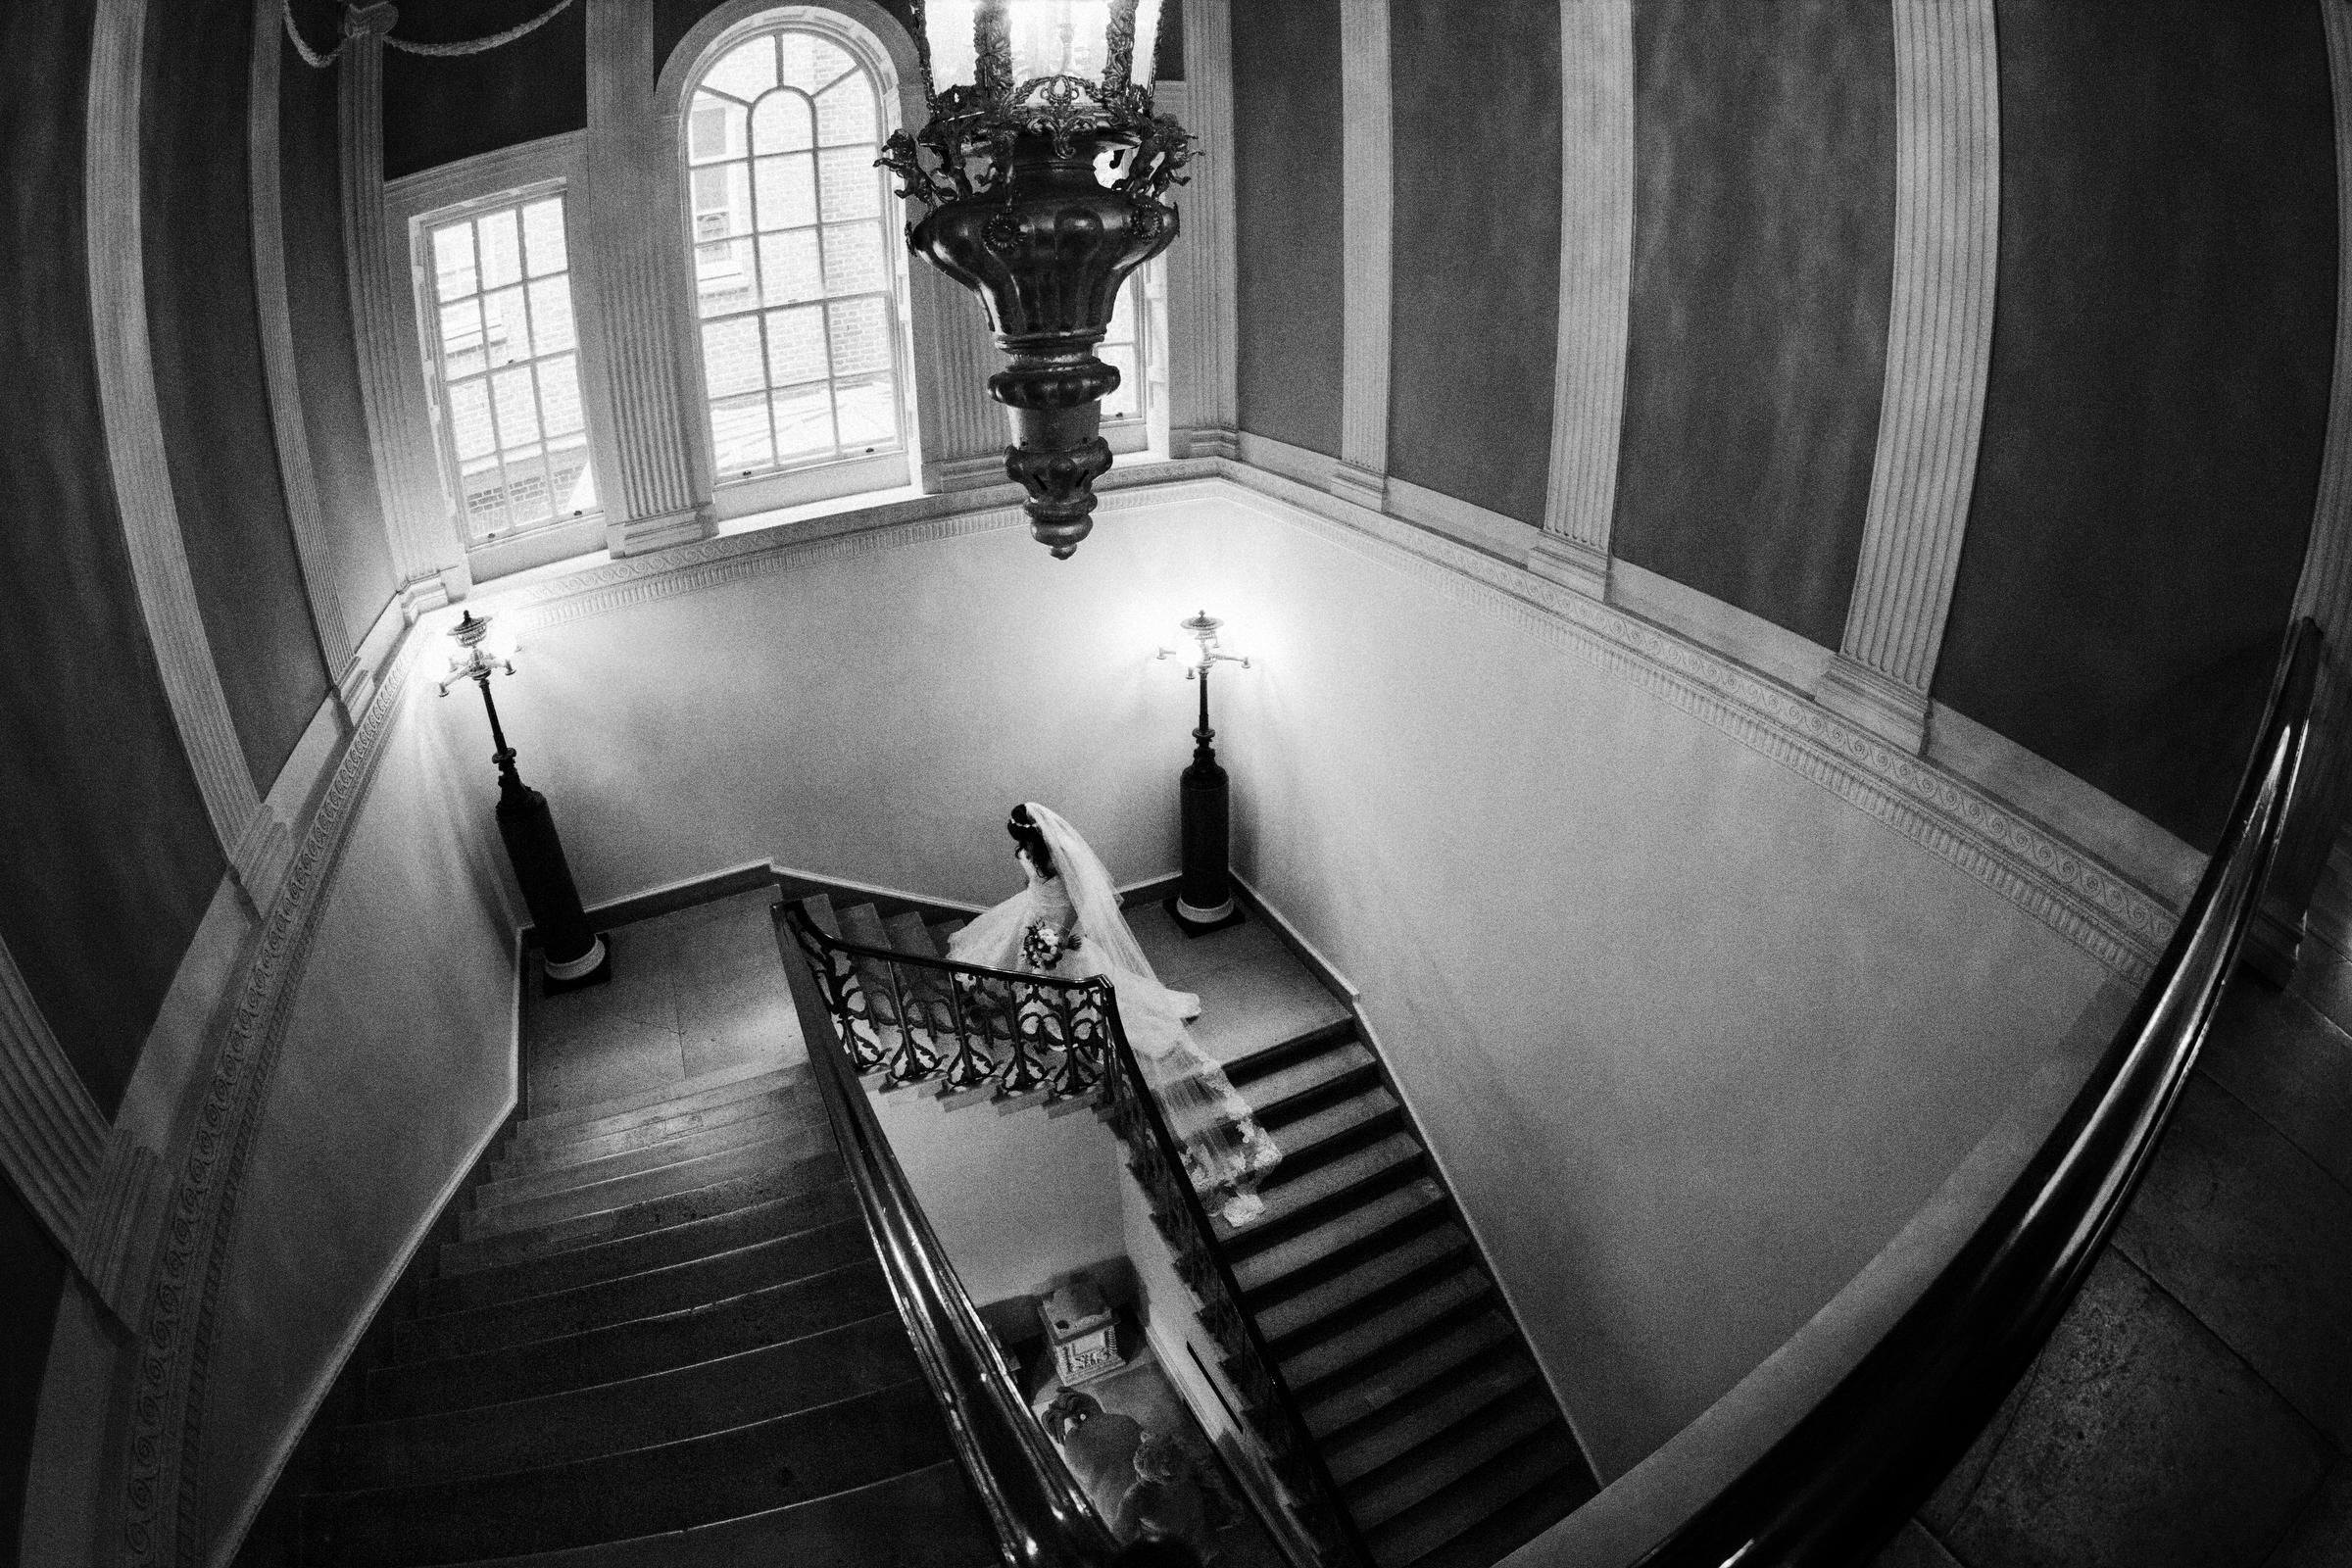 Bride ascending dramatic stairs by Jeff Ascough